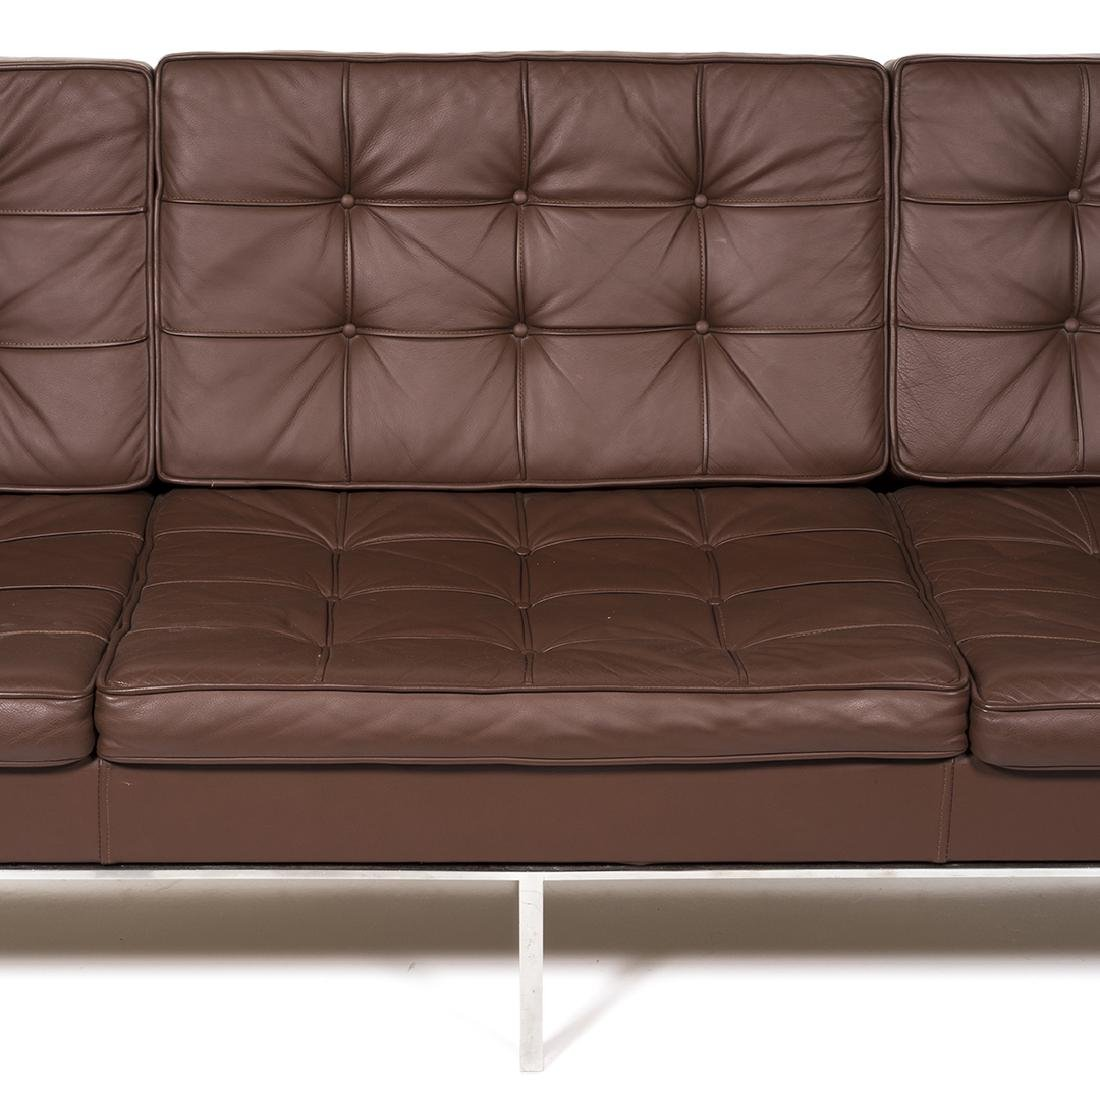 Florence Knoll Leather Sofa - 6